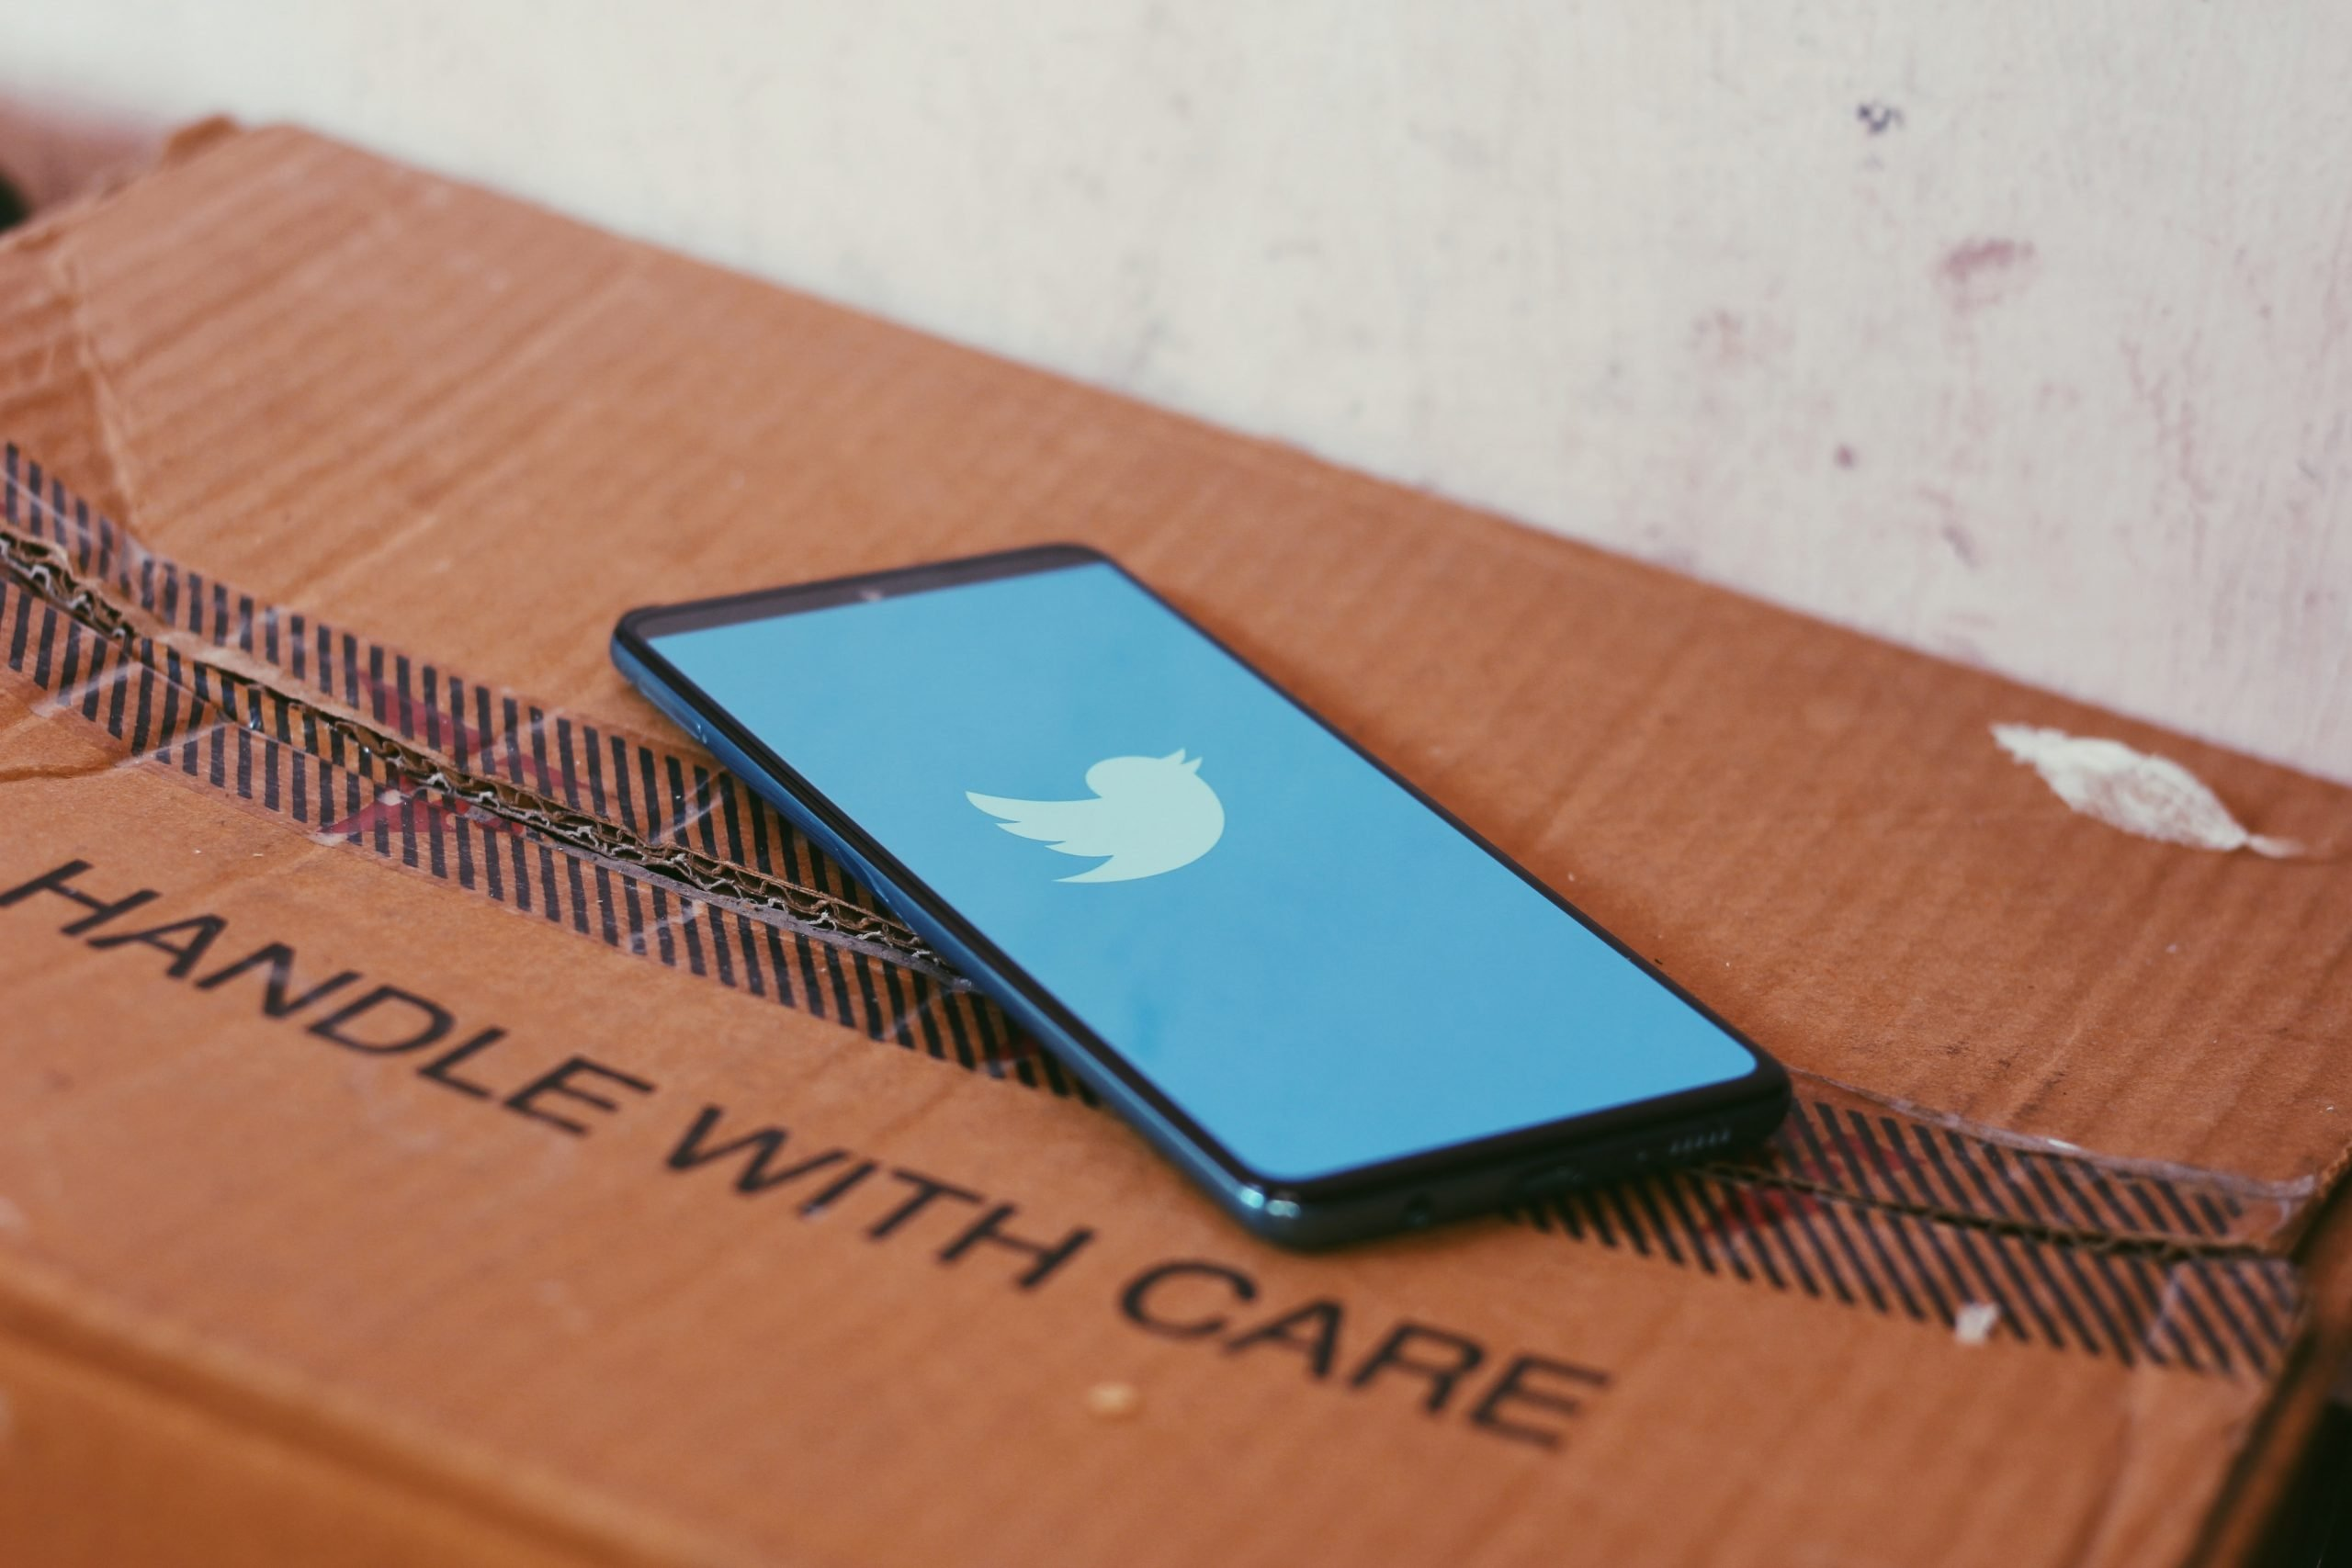 Social Media handle with care